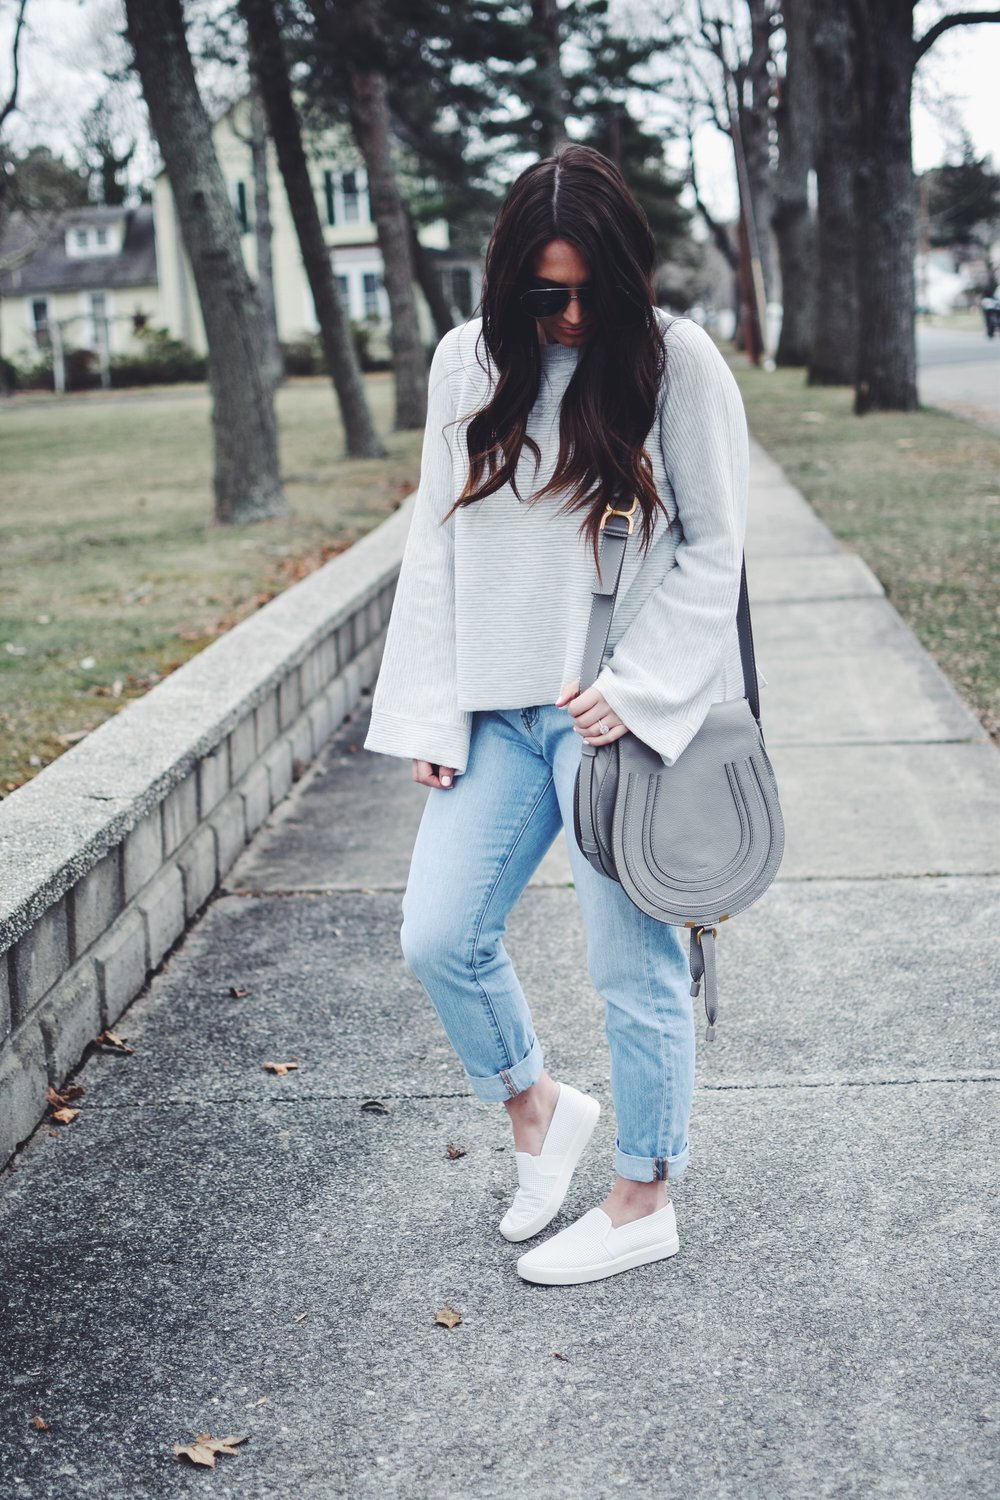 Open Back Sweater for the Spring Transition | Pine Barren Beauty | gentle fawn open back sweater, light weight sweater for spring, spring outfit idea, spring outfit inspiration, spring fashion, madewell denim, high waisted denim, chloe bag, hair goals, hair vibes, every day loose waves